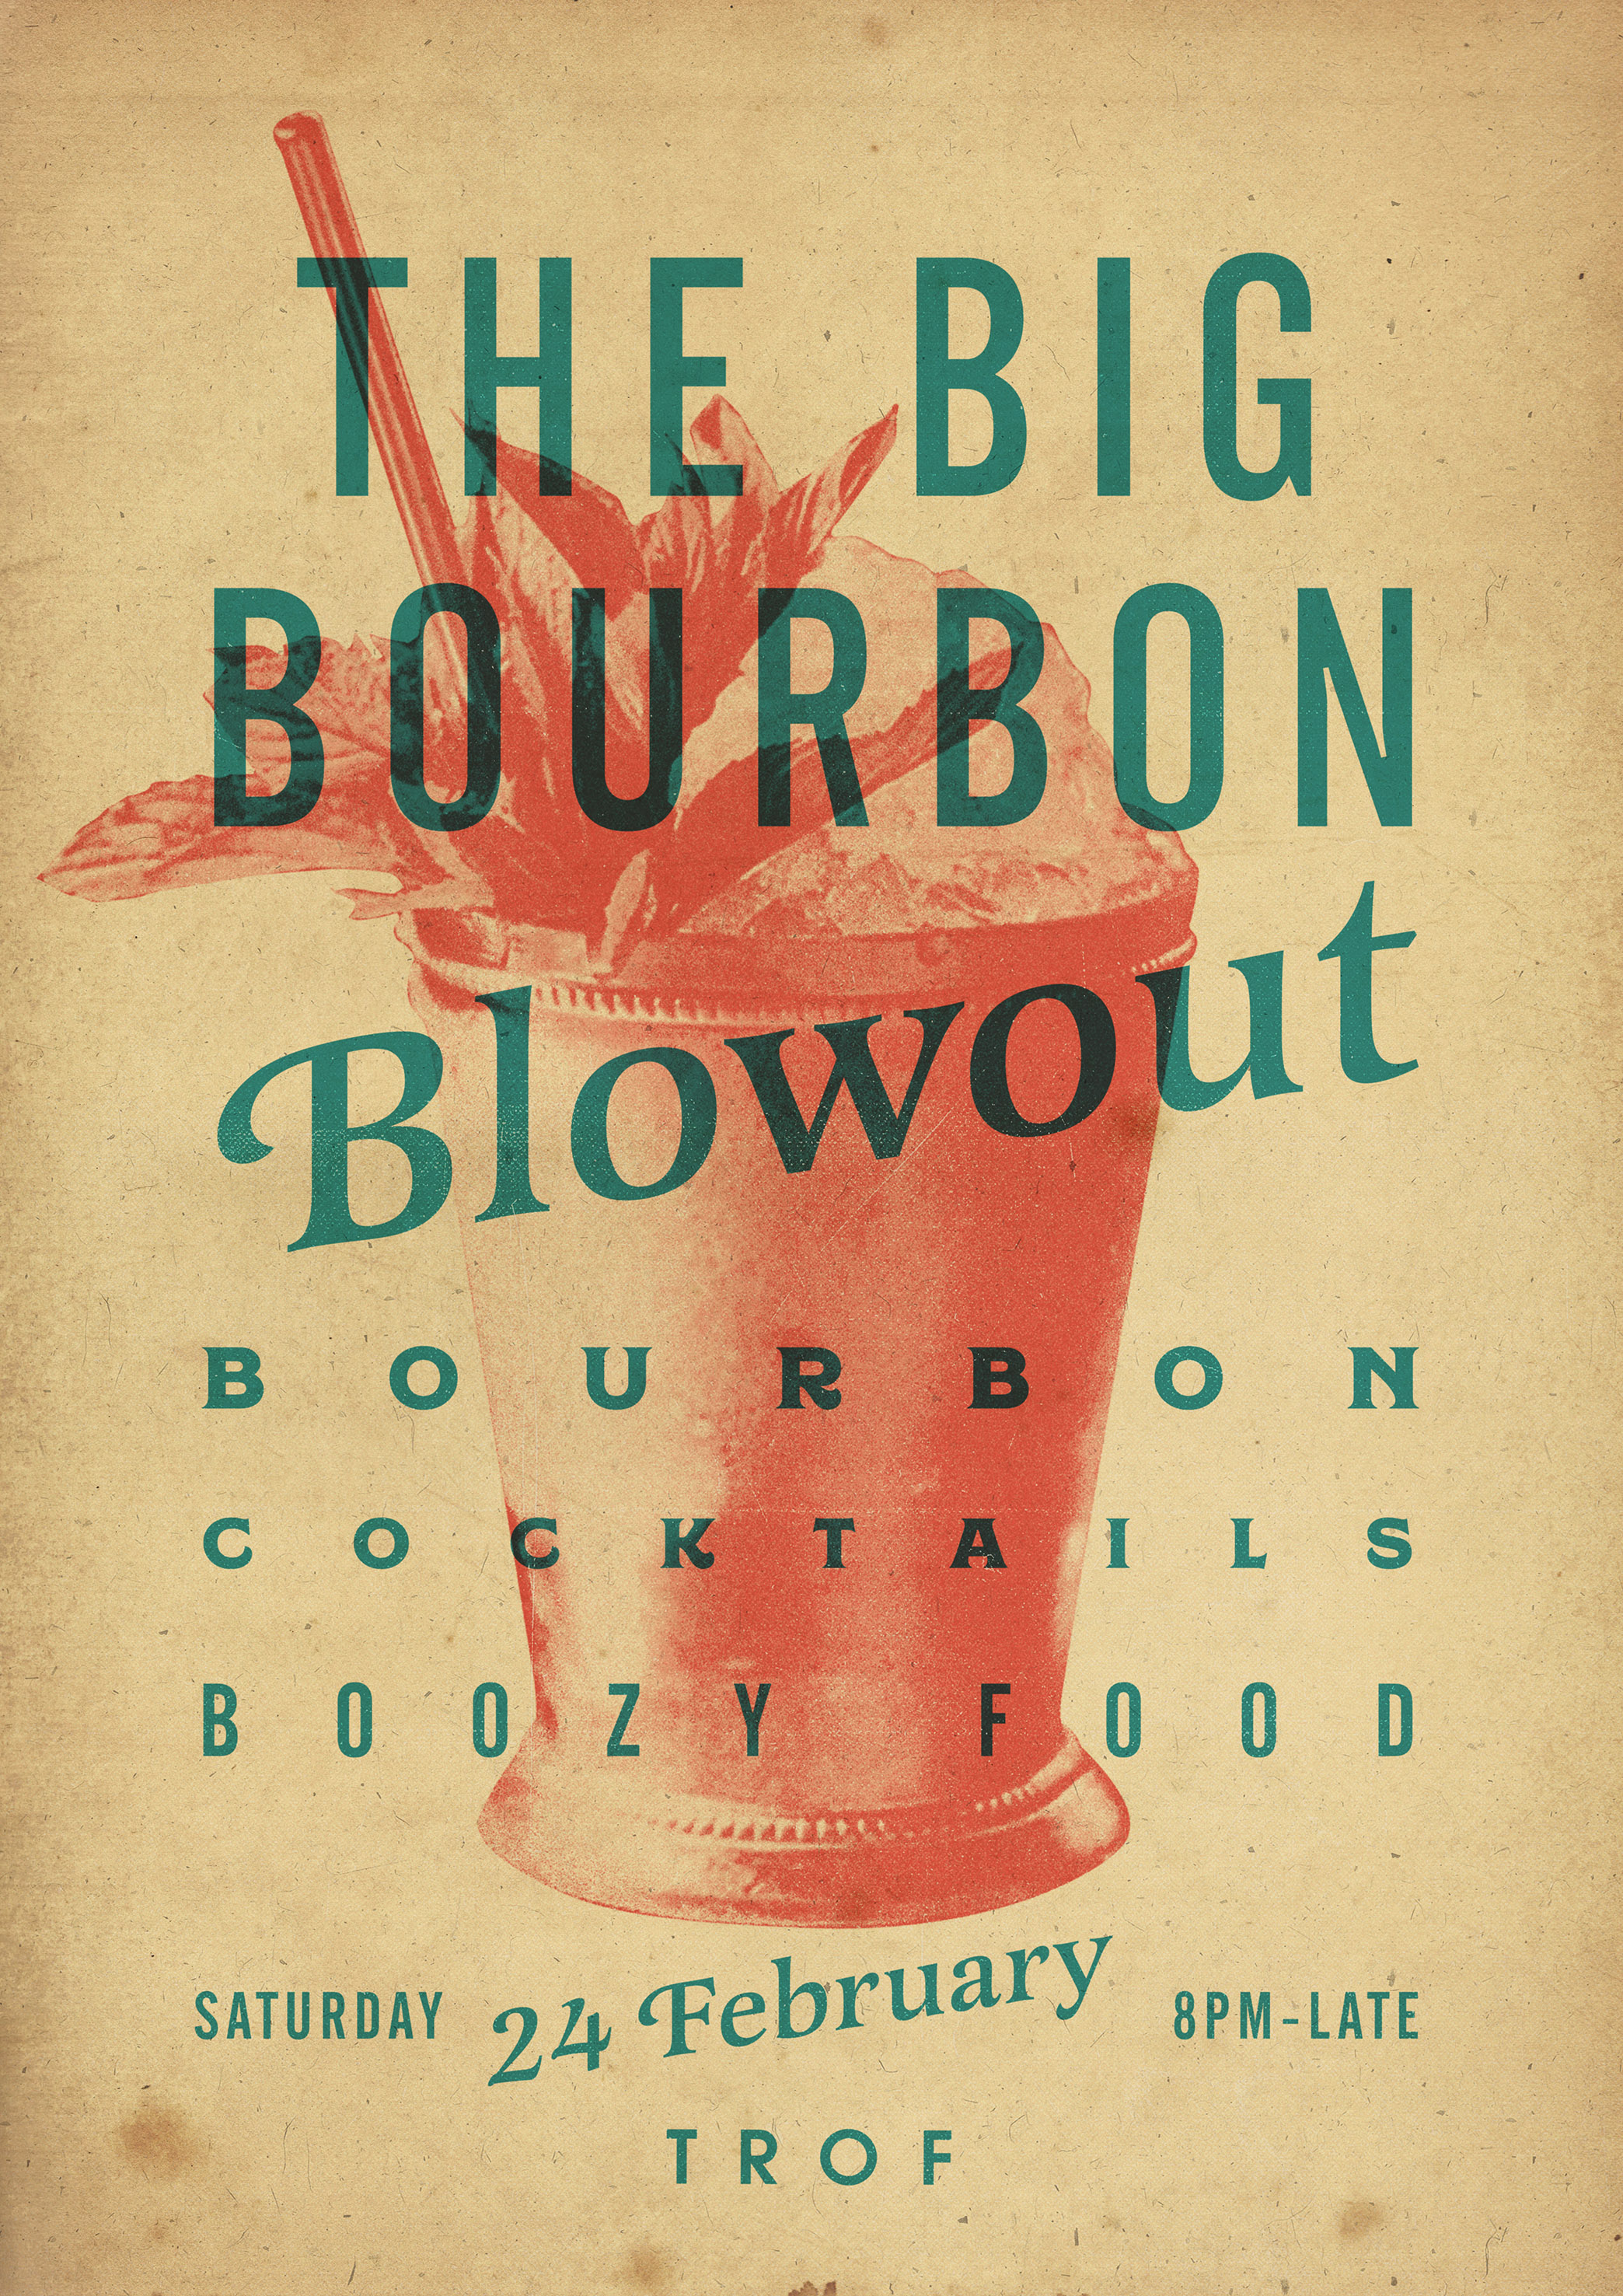 poster for The Big Bourbon Blowout